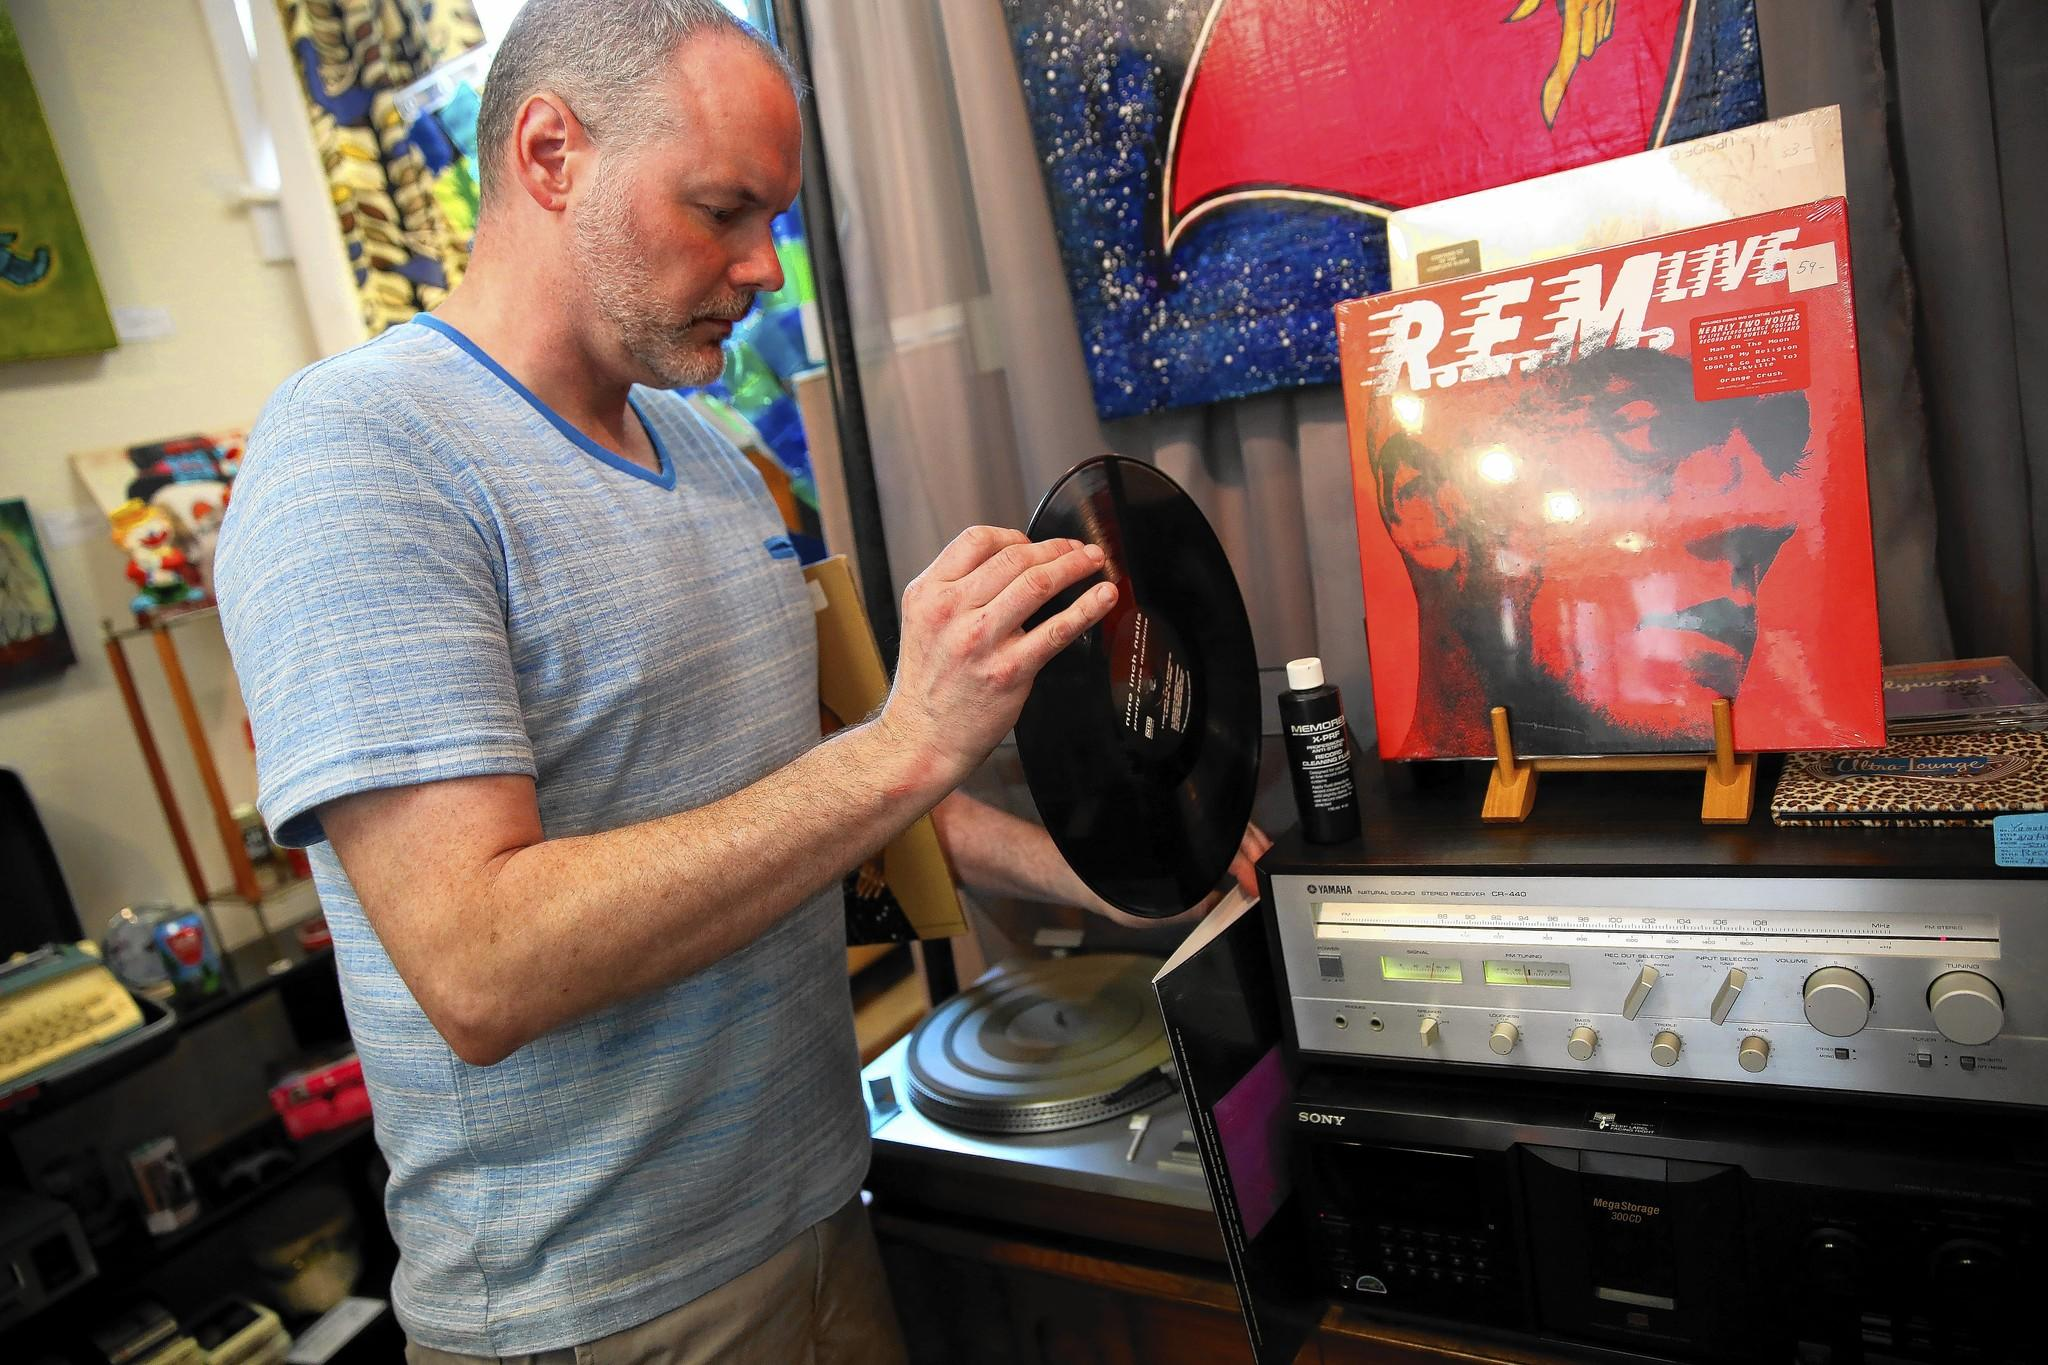 John Arnsdorff opened his record store, Audio Archaeology, in March in the Edgewater neighborhood. He sells new and used vinyl records and record players.